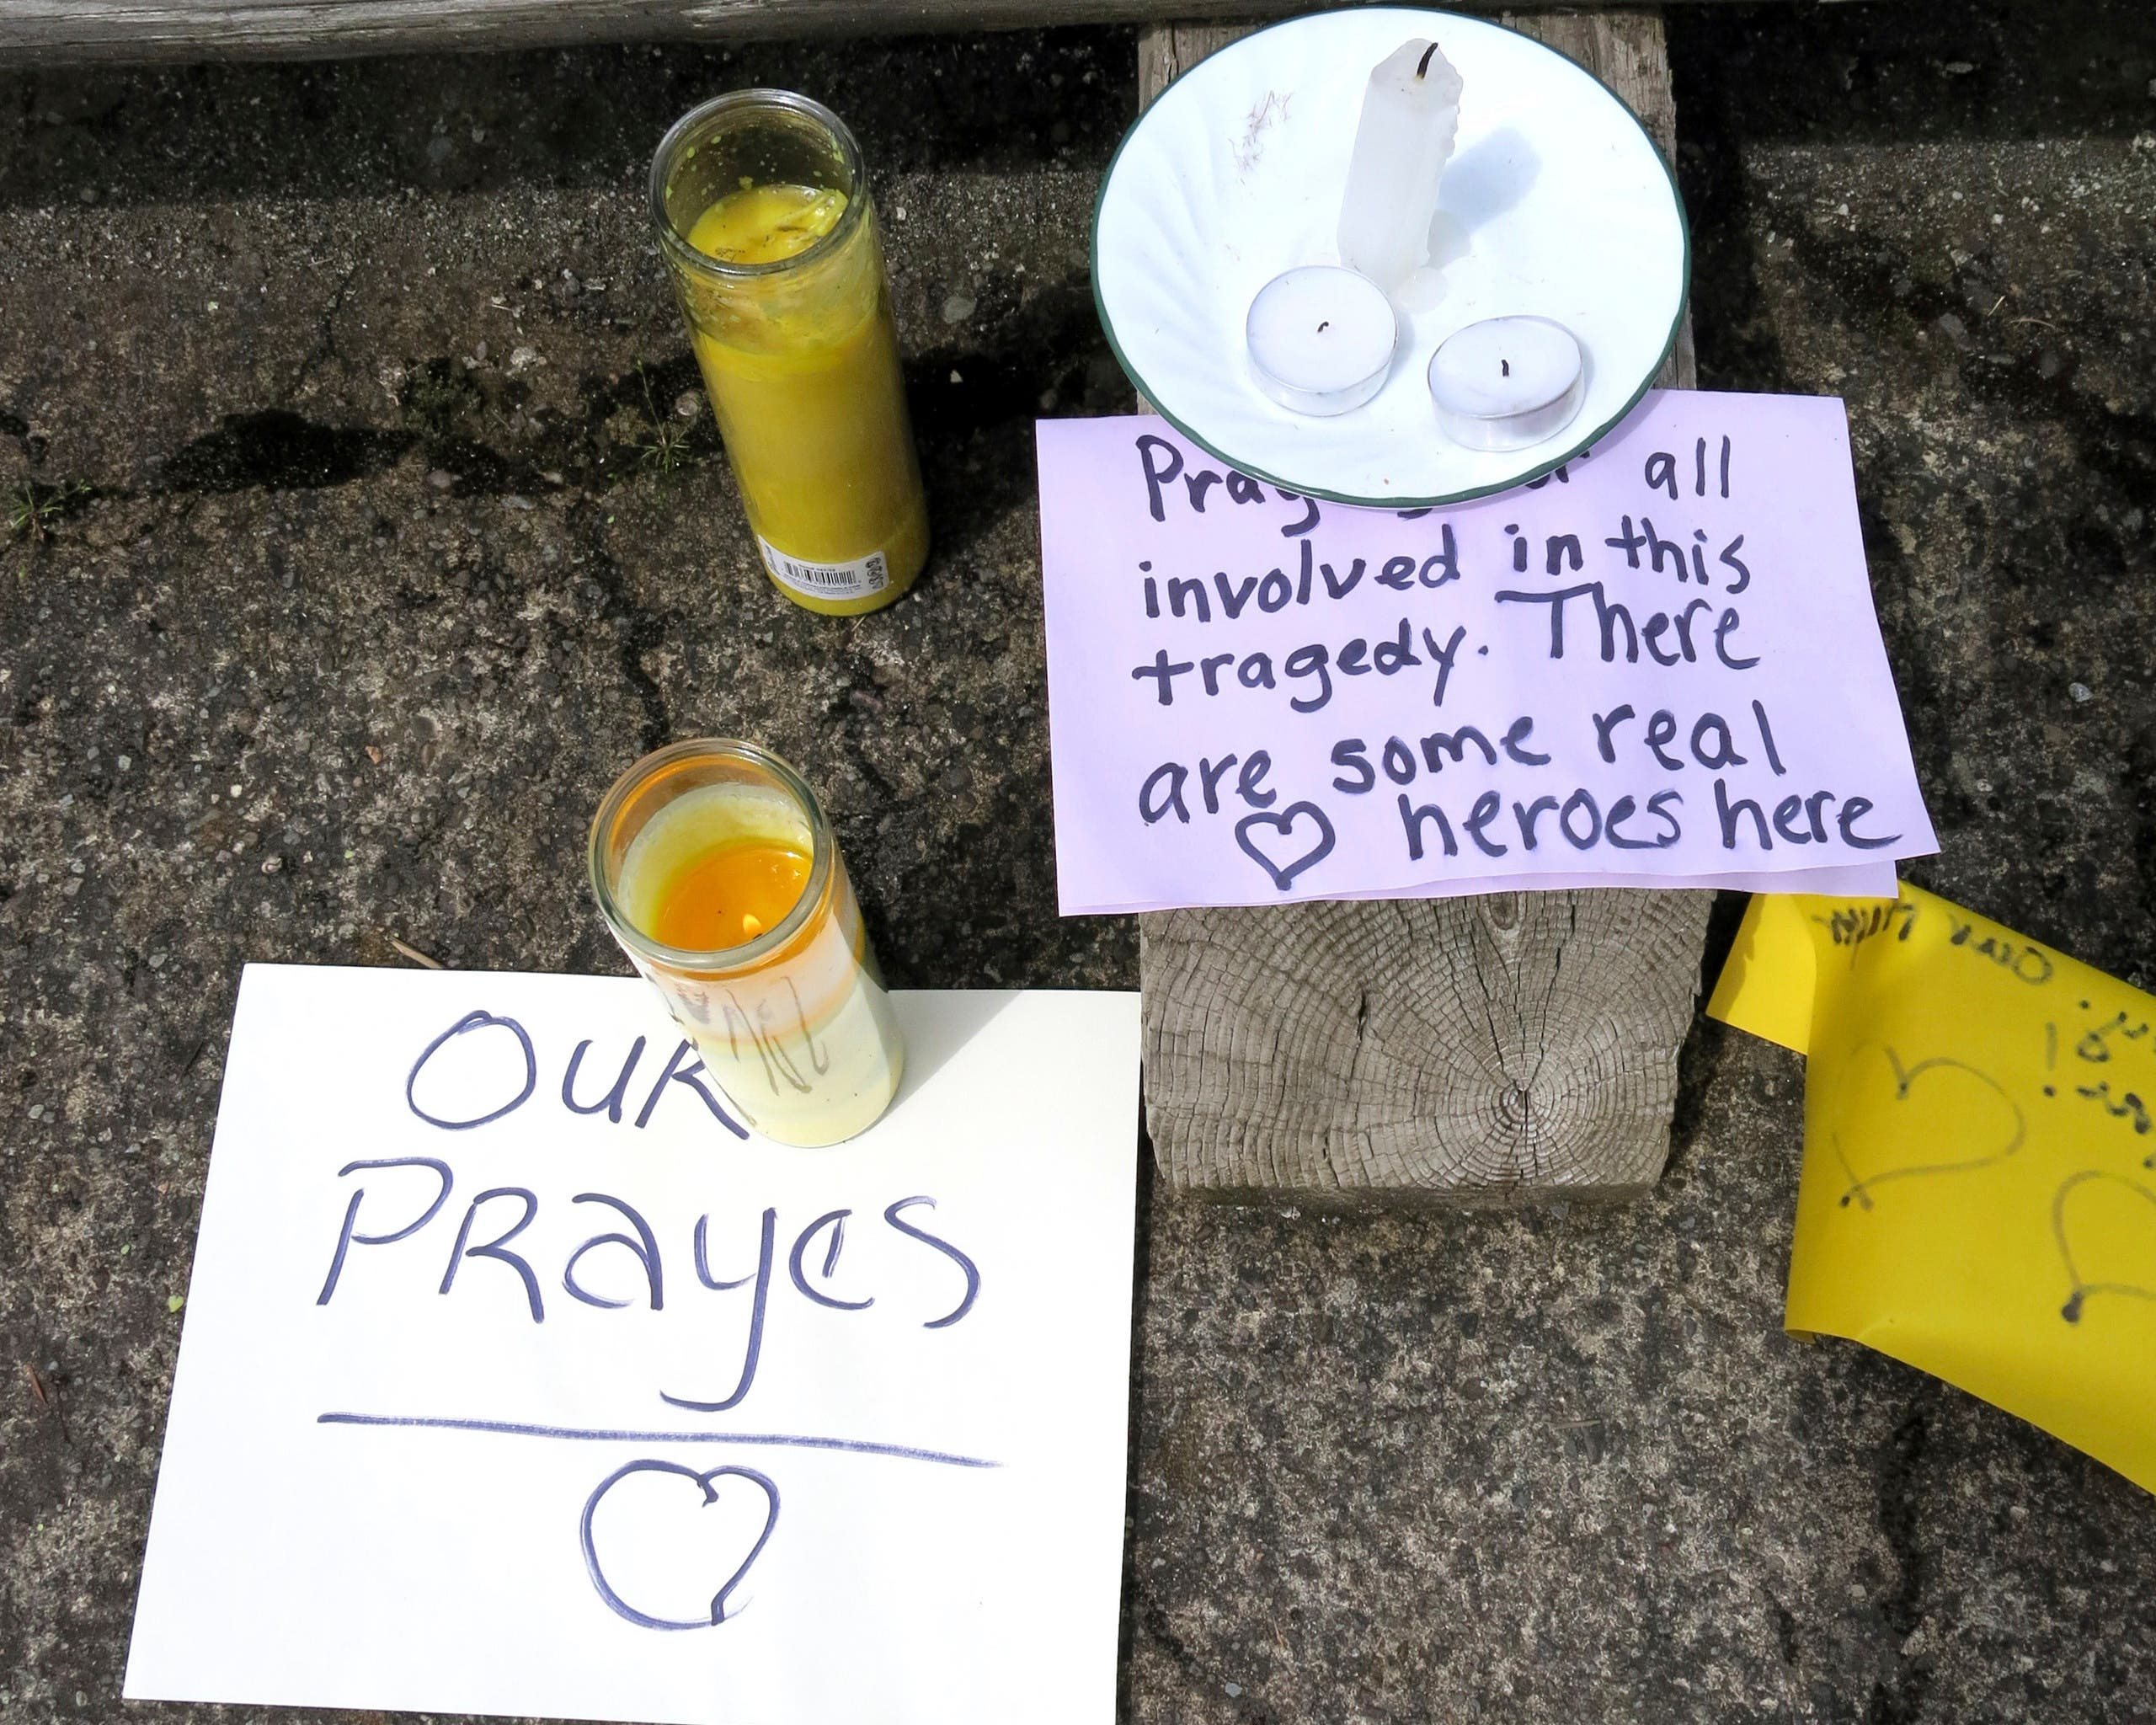 Well-wishing messages and candles for an injured employee are shown outside a grocery store in Estacada, May 15, 2017. (AP)